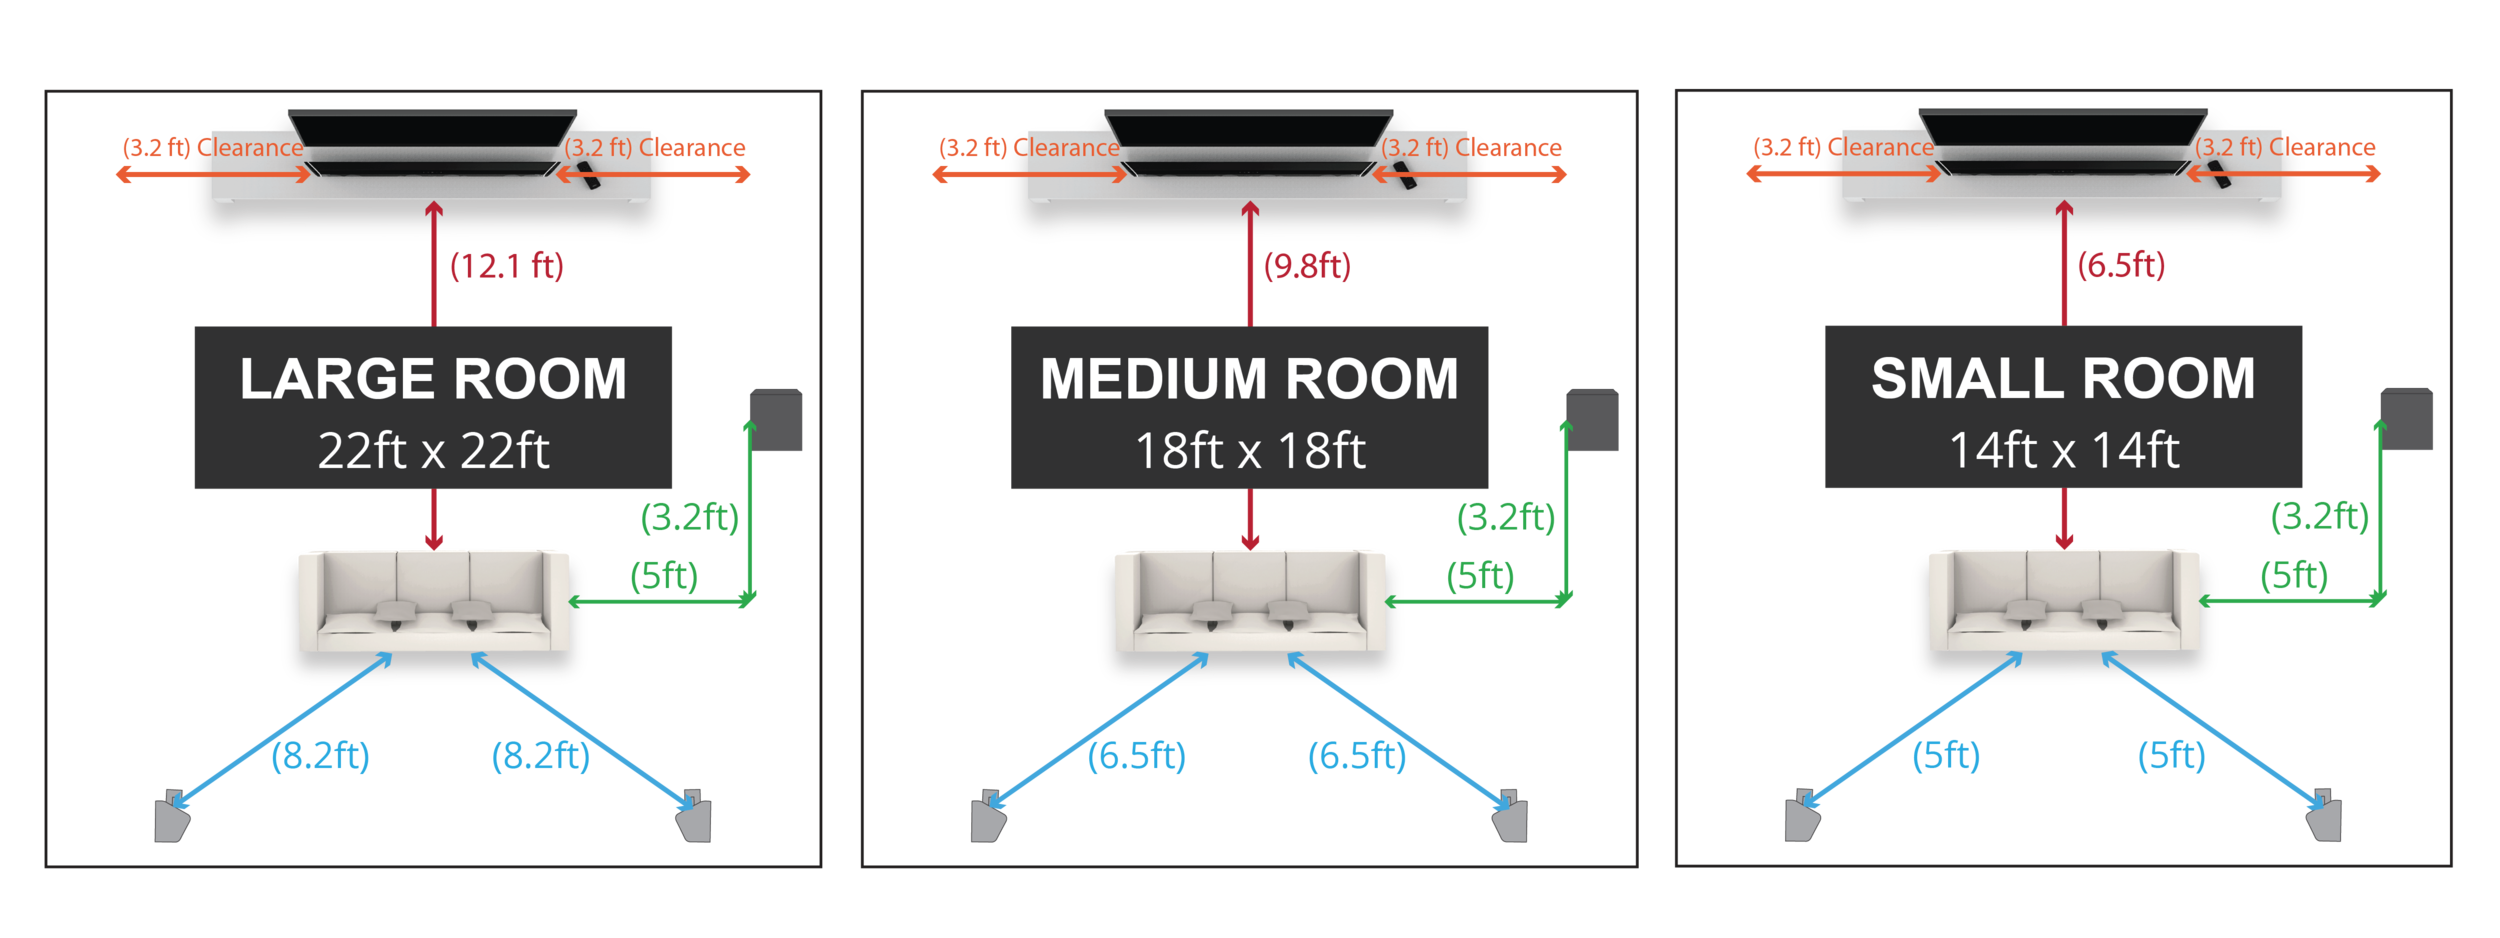 pro-7.1-one-button-room-optimization.png